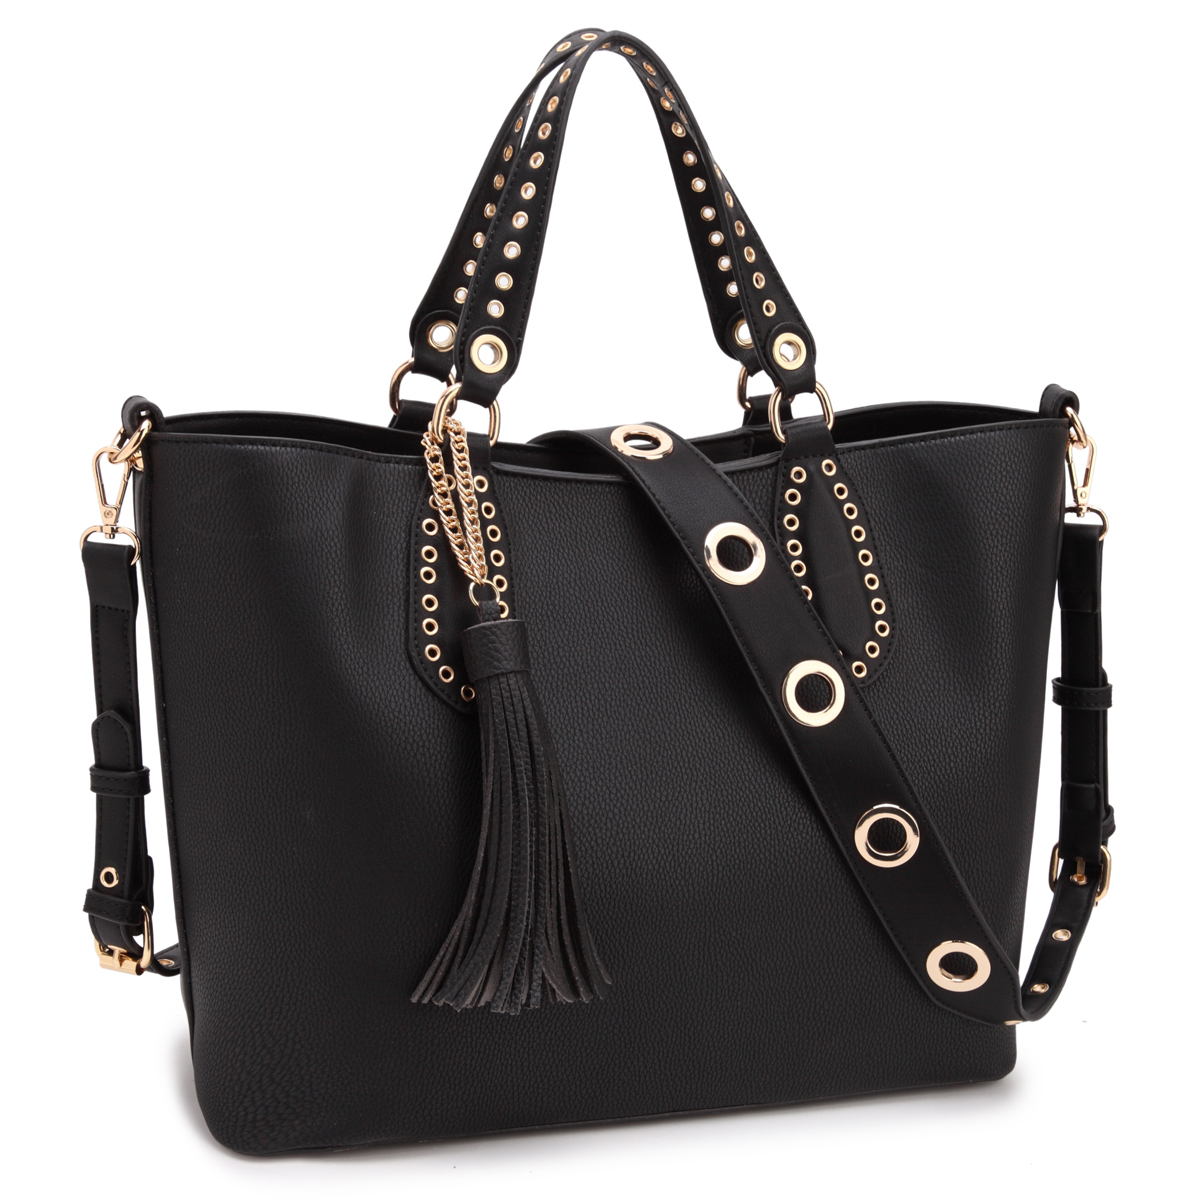 DASEIN Classic Tote with Fringe Tassels and Grommet Design retro women s satchel with engraving and fringe design